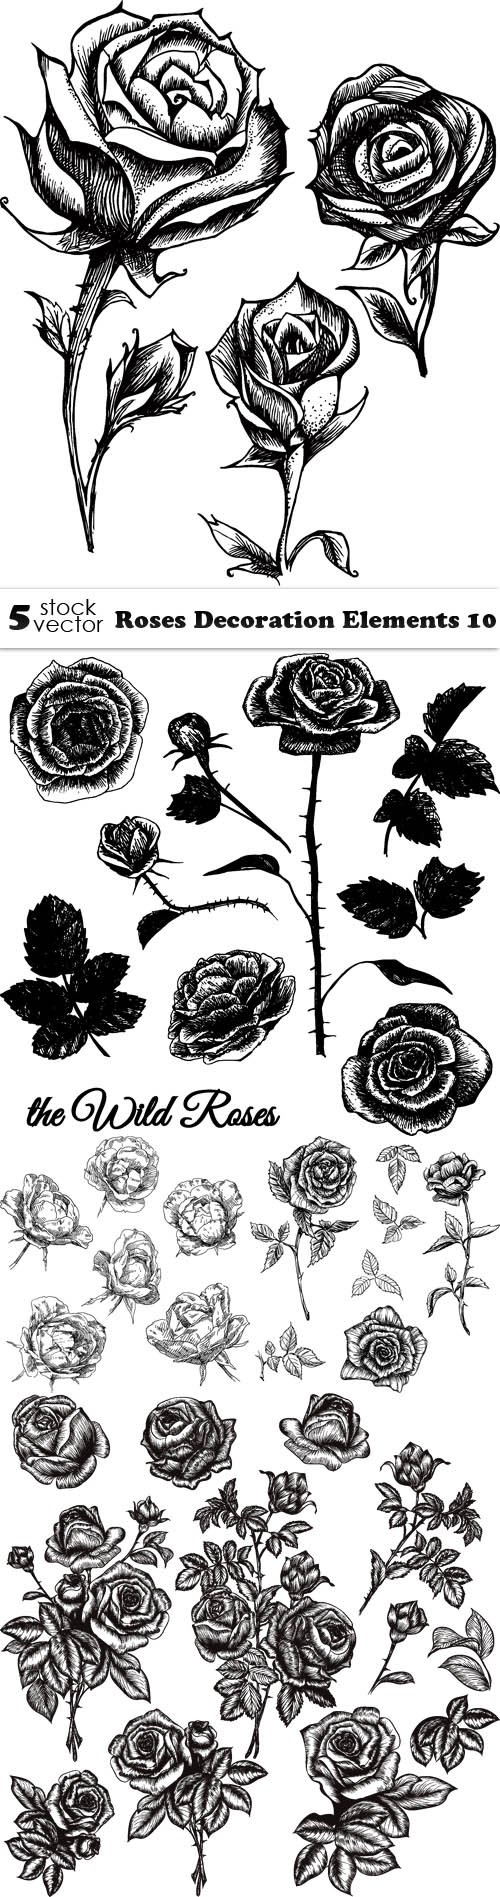 Vectors - Roses Decoration Elements 10